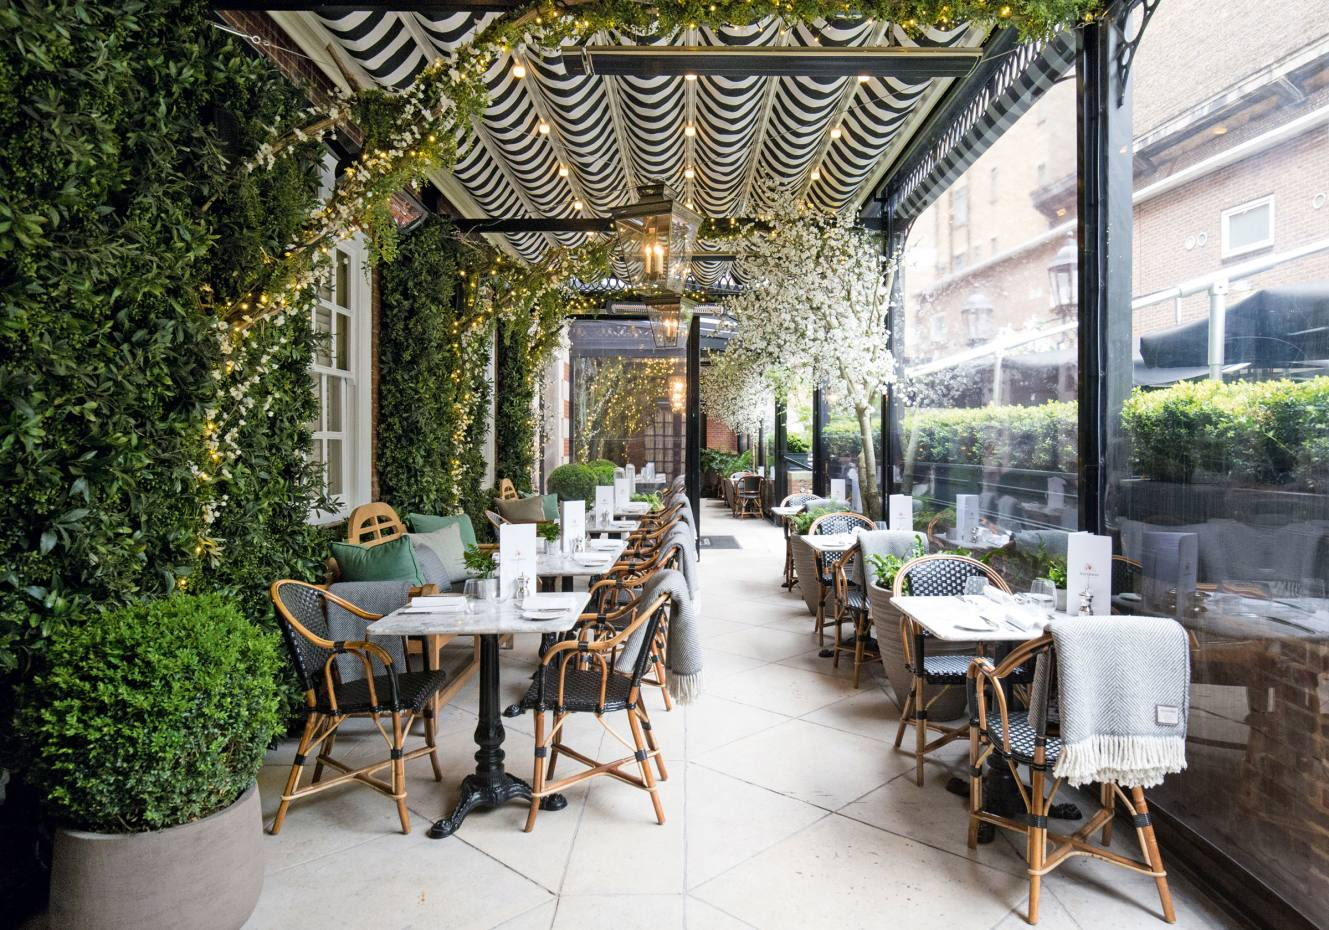 The Dalloway Terrace at The Bloomsbury hotel in London, which has hada makeover spearheaded by Martin Brudnizki